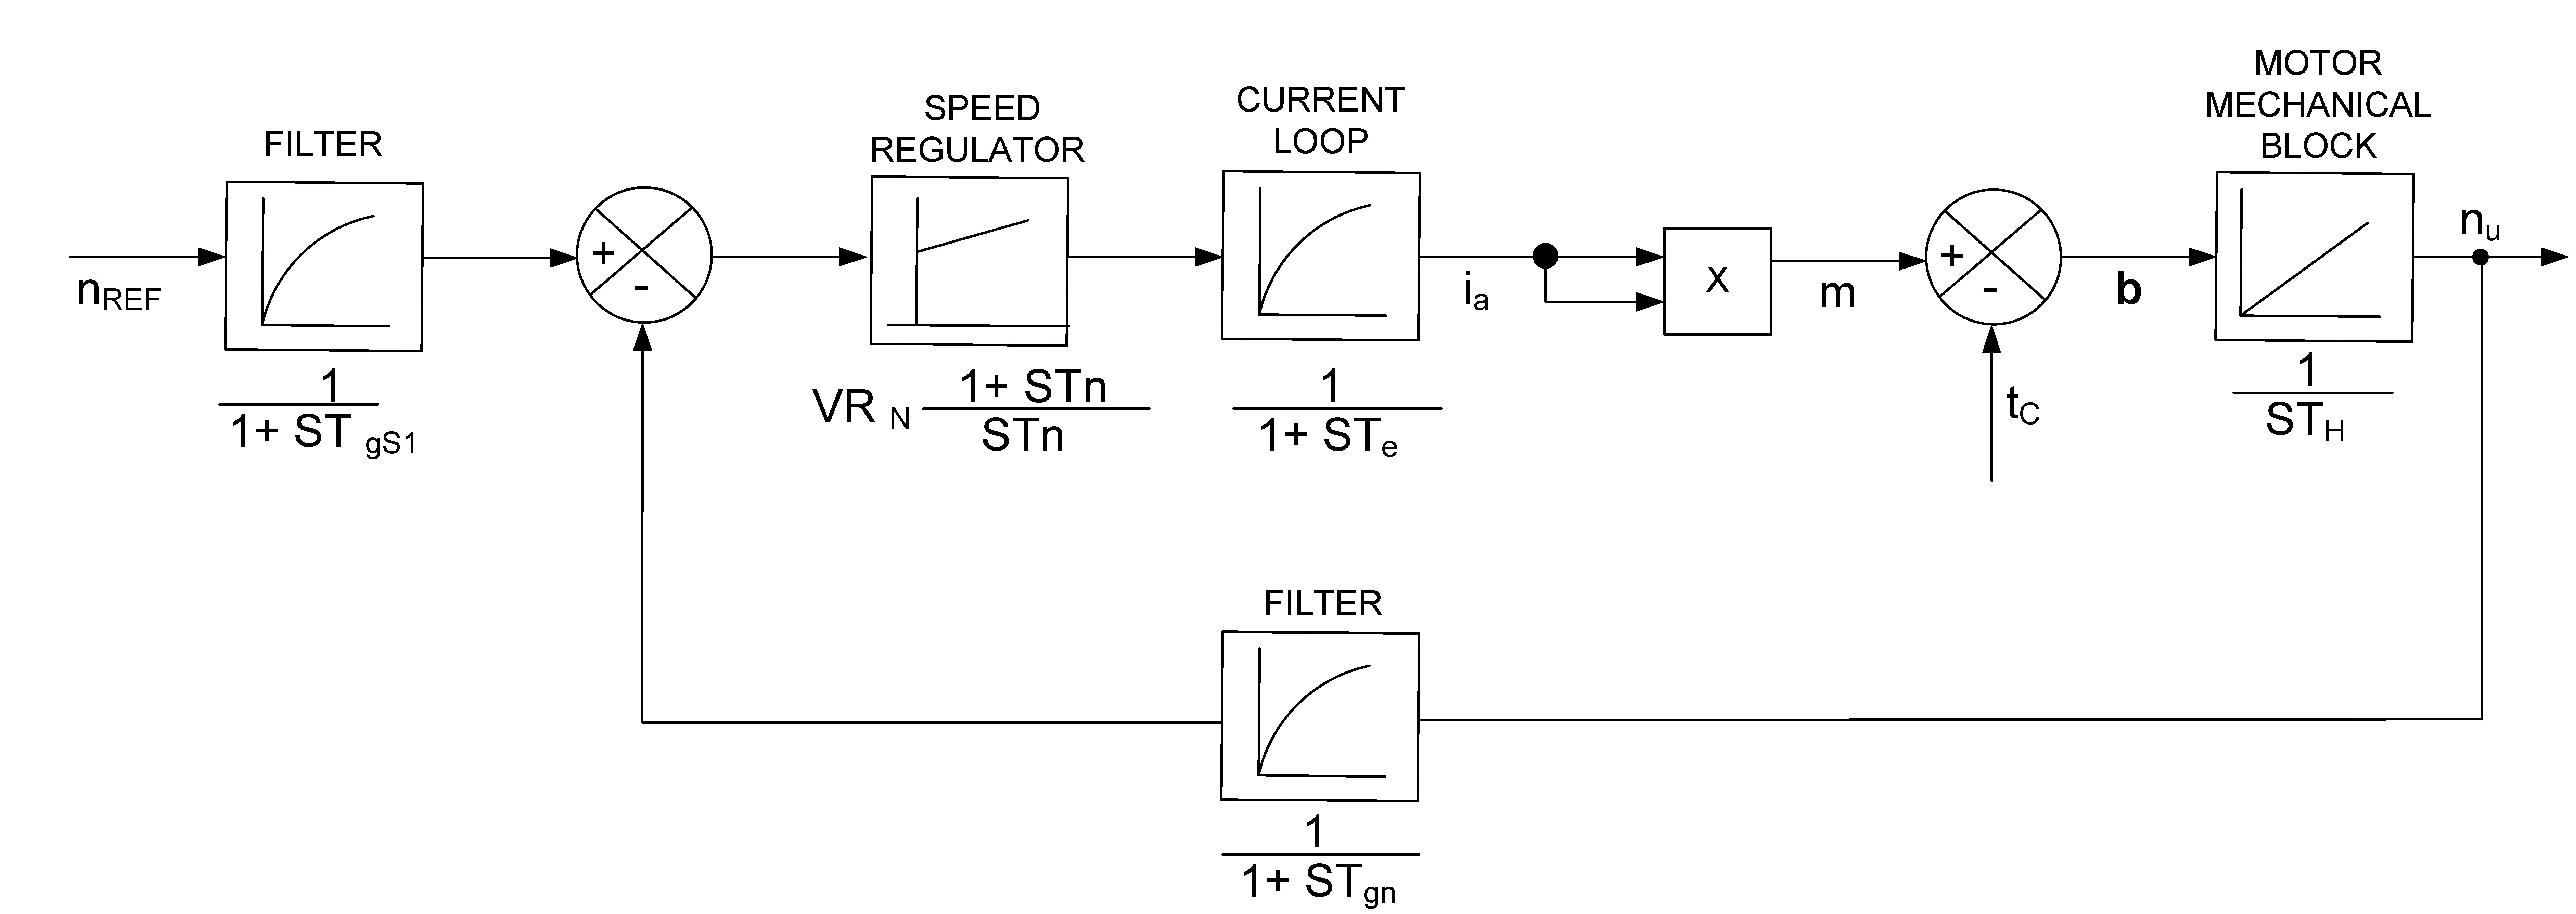 Modelling And Implementation Of A Series Dc Motor Drive System Interval Methods For Analog Circuits Intechopen Figure 11